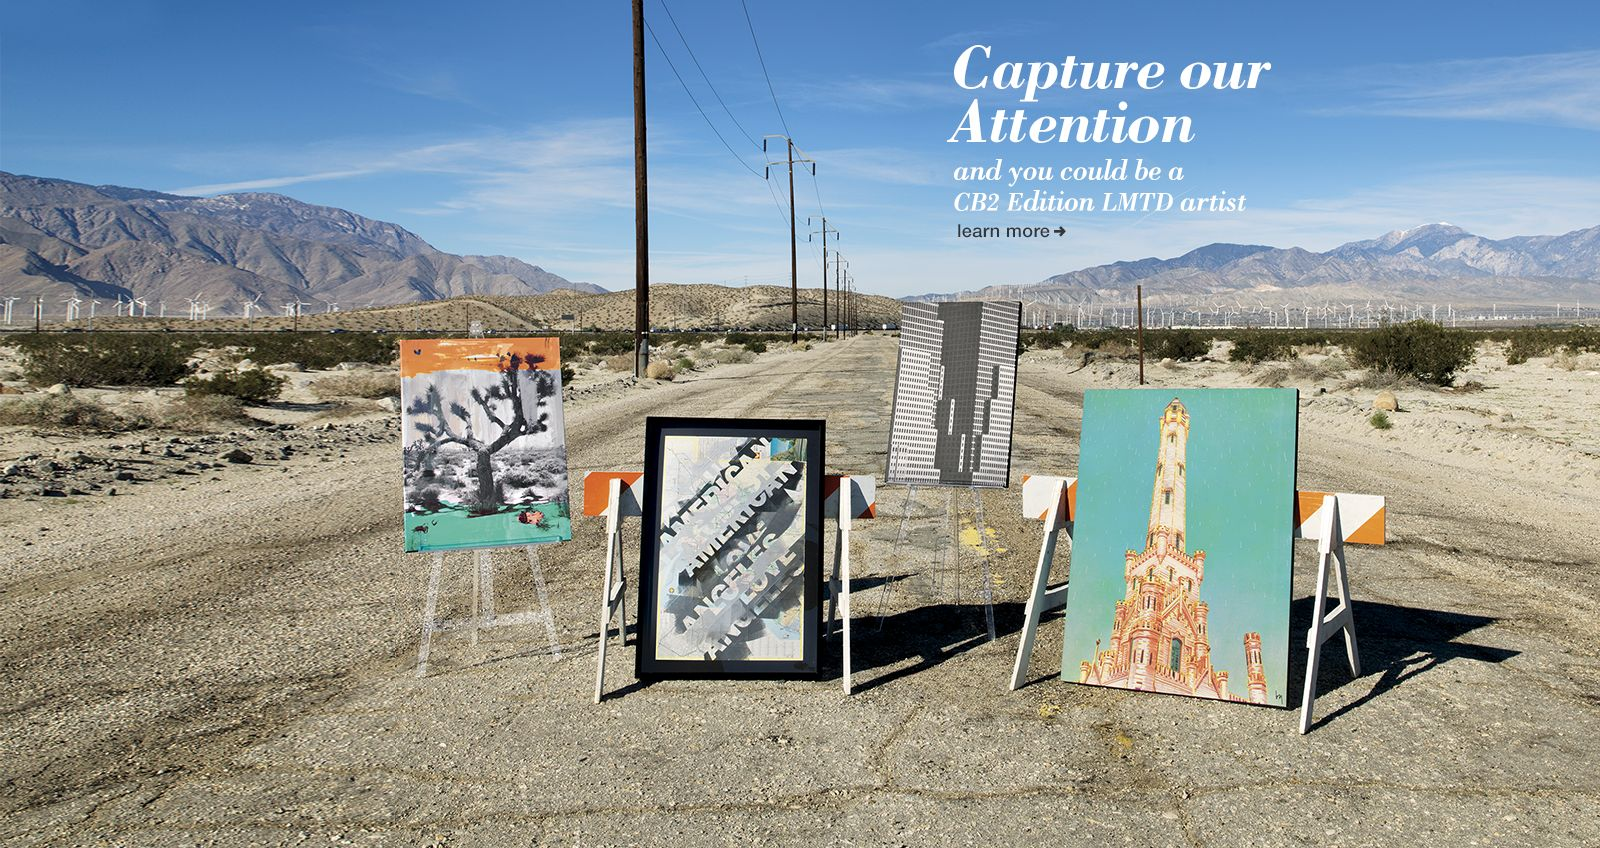 Capture our Attention You could be a CB2 LMTD artist by posting an image on Instagram